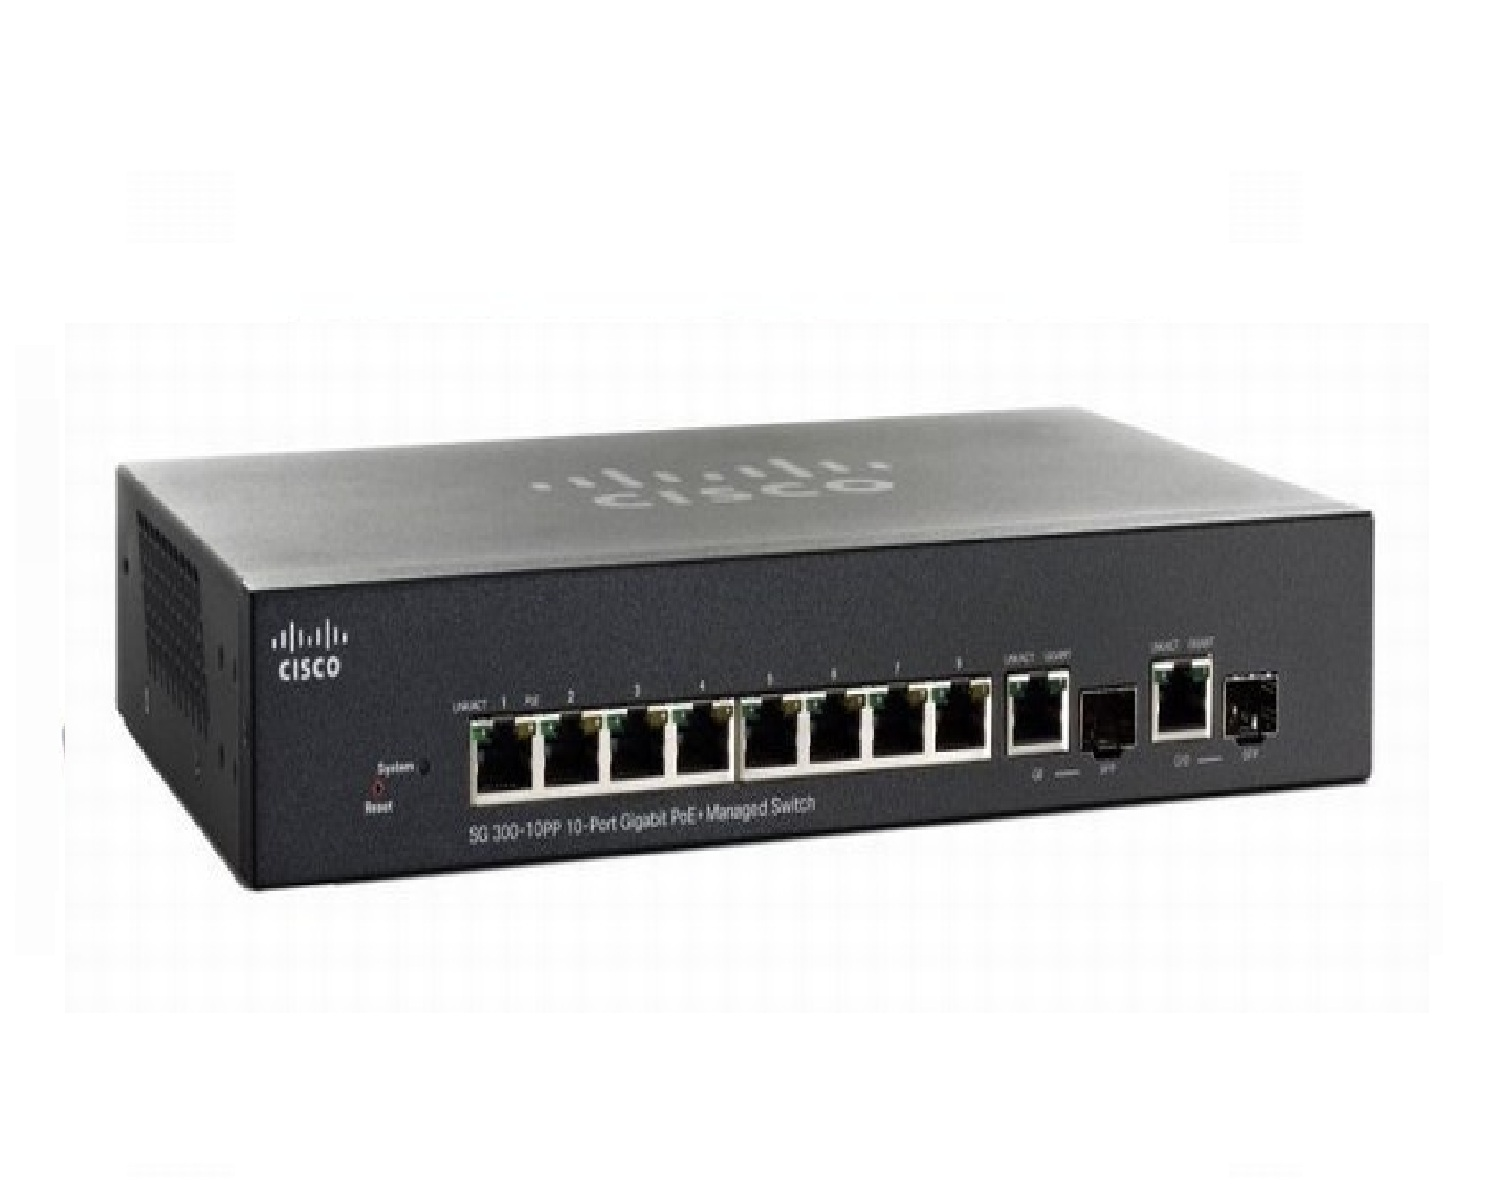 Switch CISCO SG300-10PP-10-port Gigabit PoE Managed